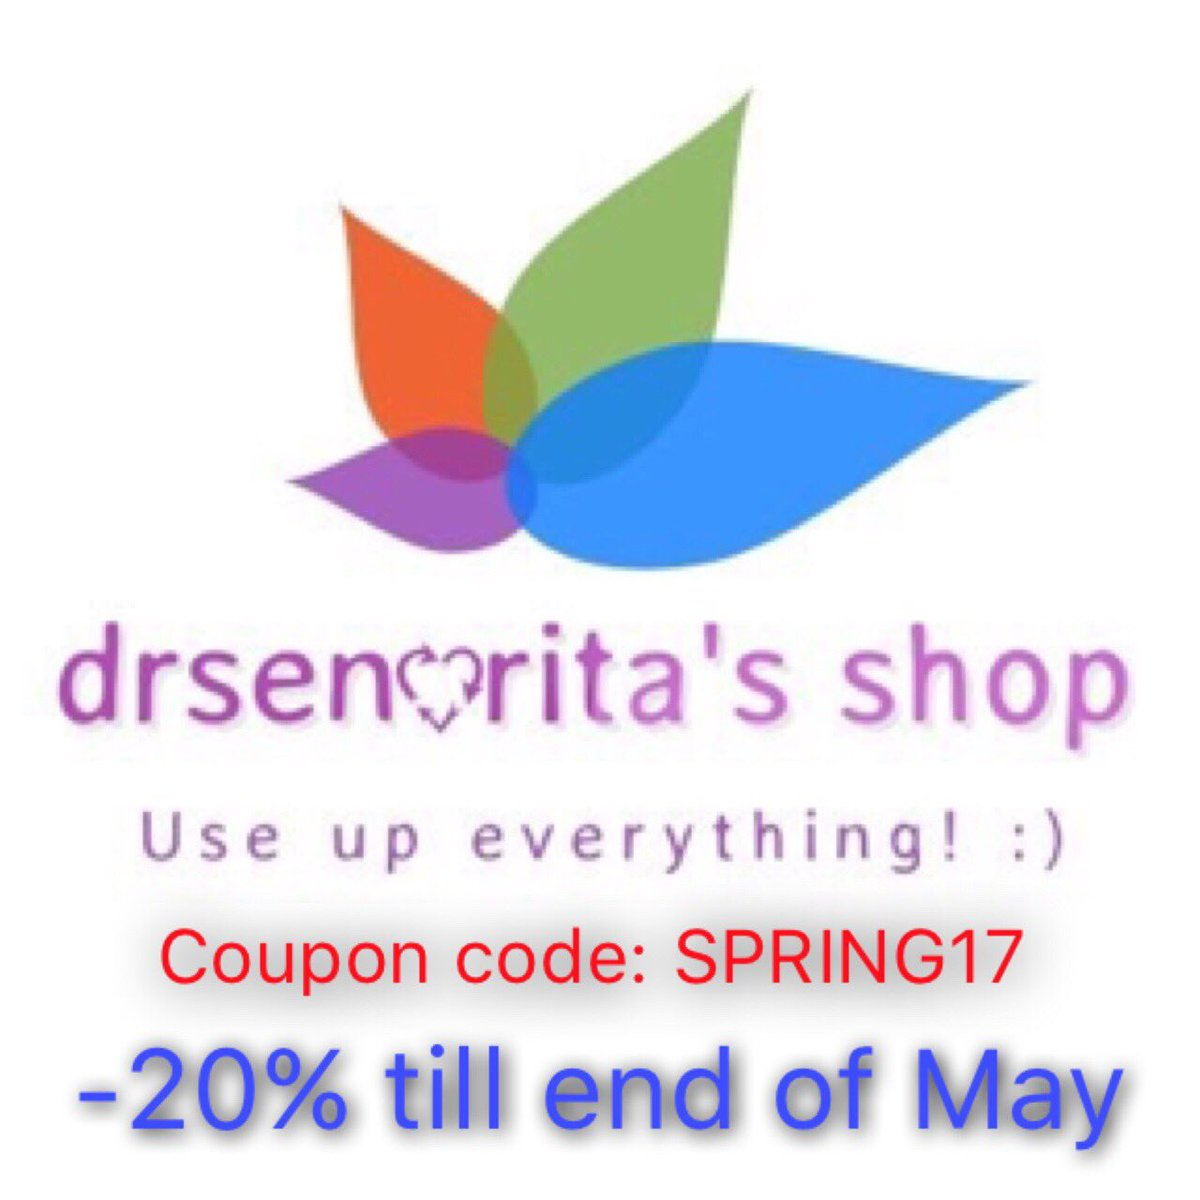 #couponcode SPRING17 to get -20% till end of May! #etsy #etsychaching #etsyshop #EtsySeller #handmade #HandmadeHour #craft #giftideas #gifts<br>http://pic.twitter.com/AmajDumYb2